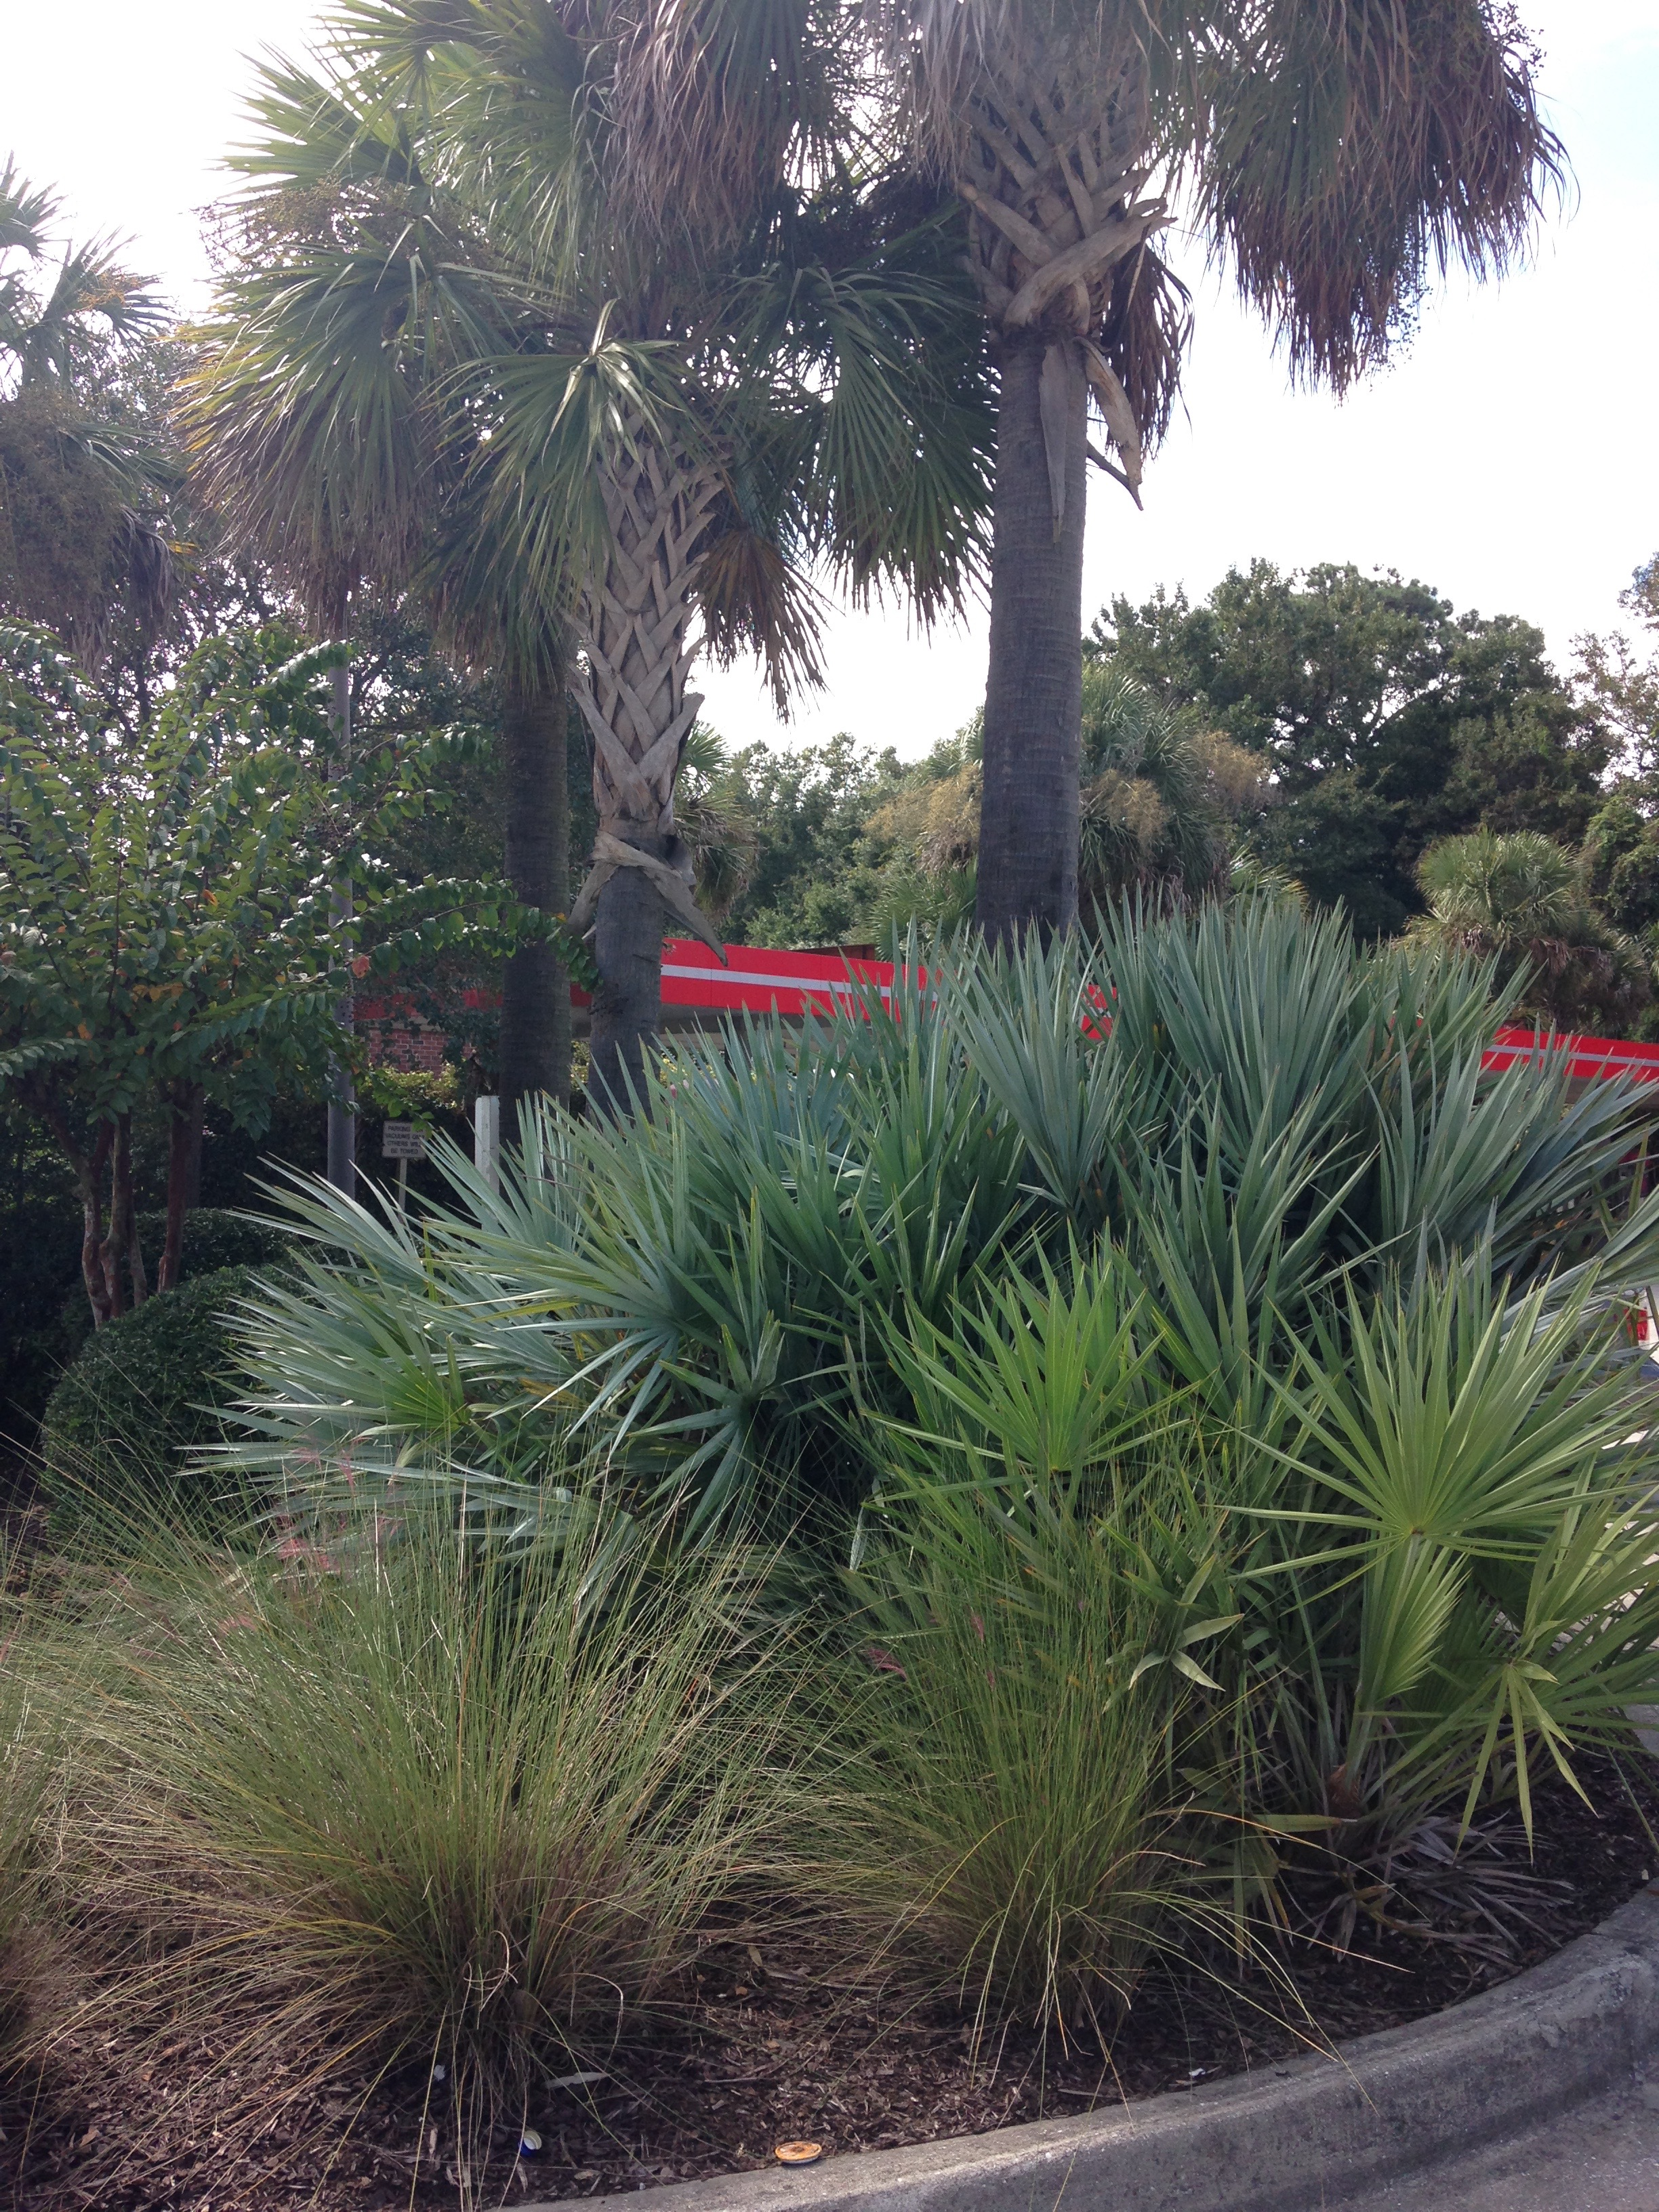 Charleston Residential Landscape Design - Coastal Lowcountry Landscape Design